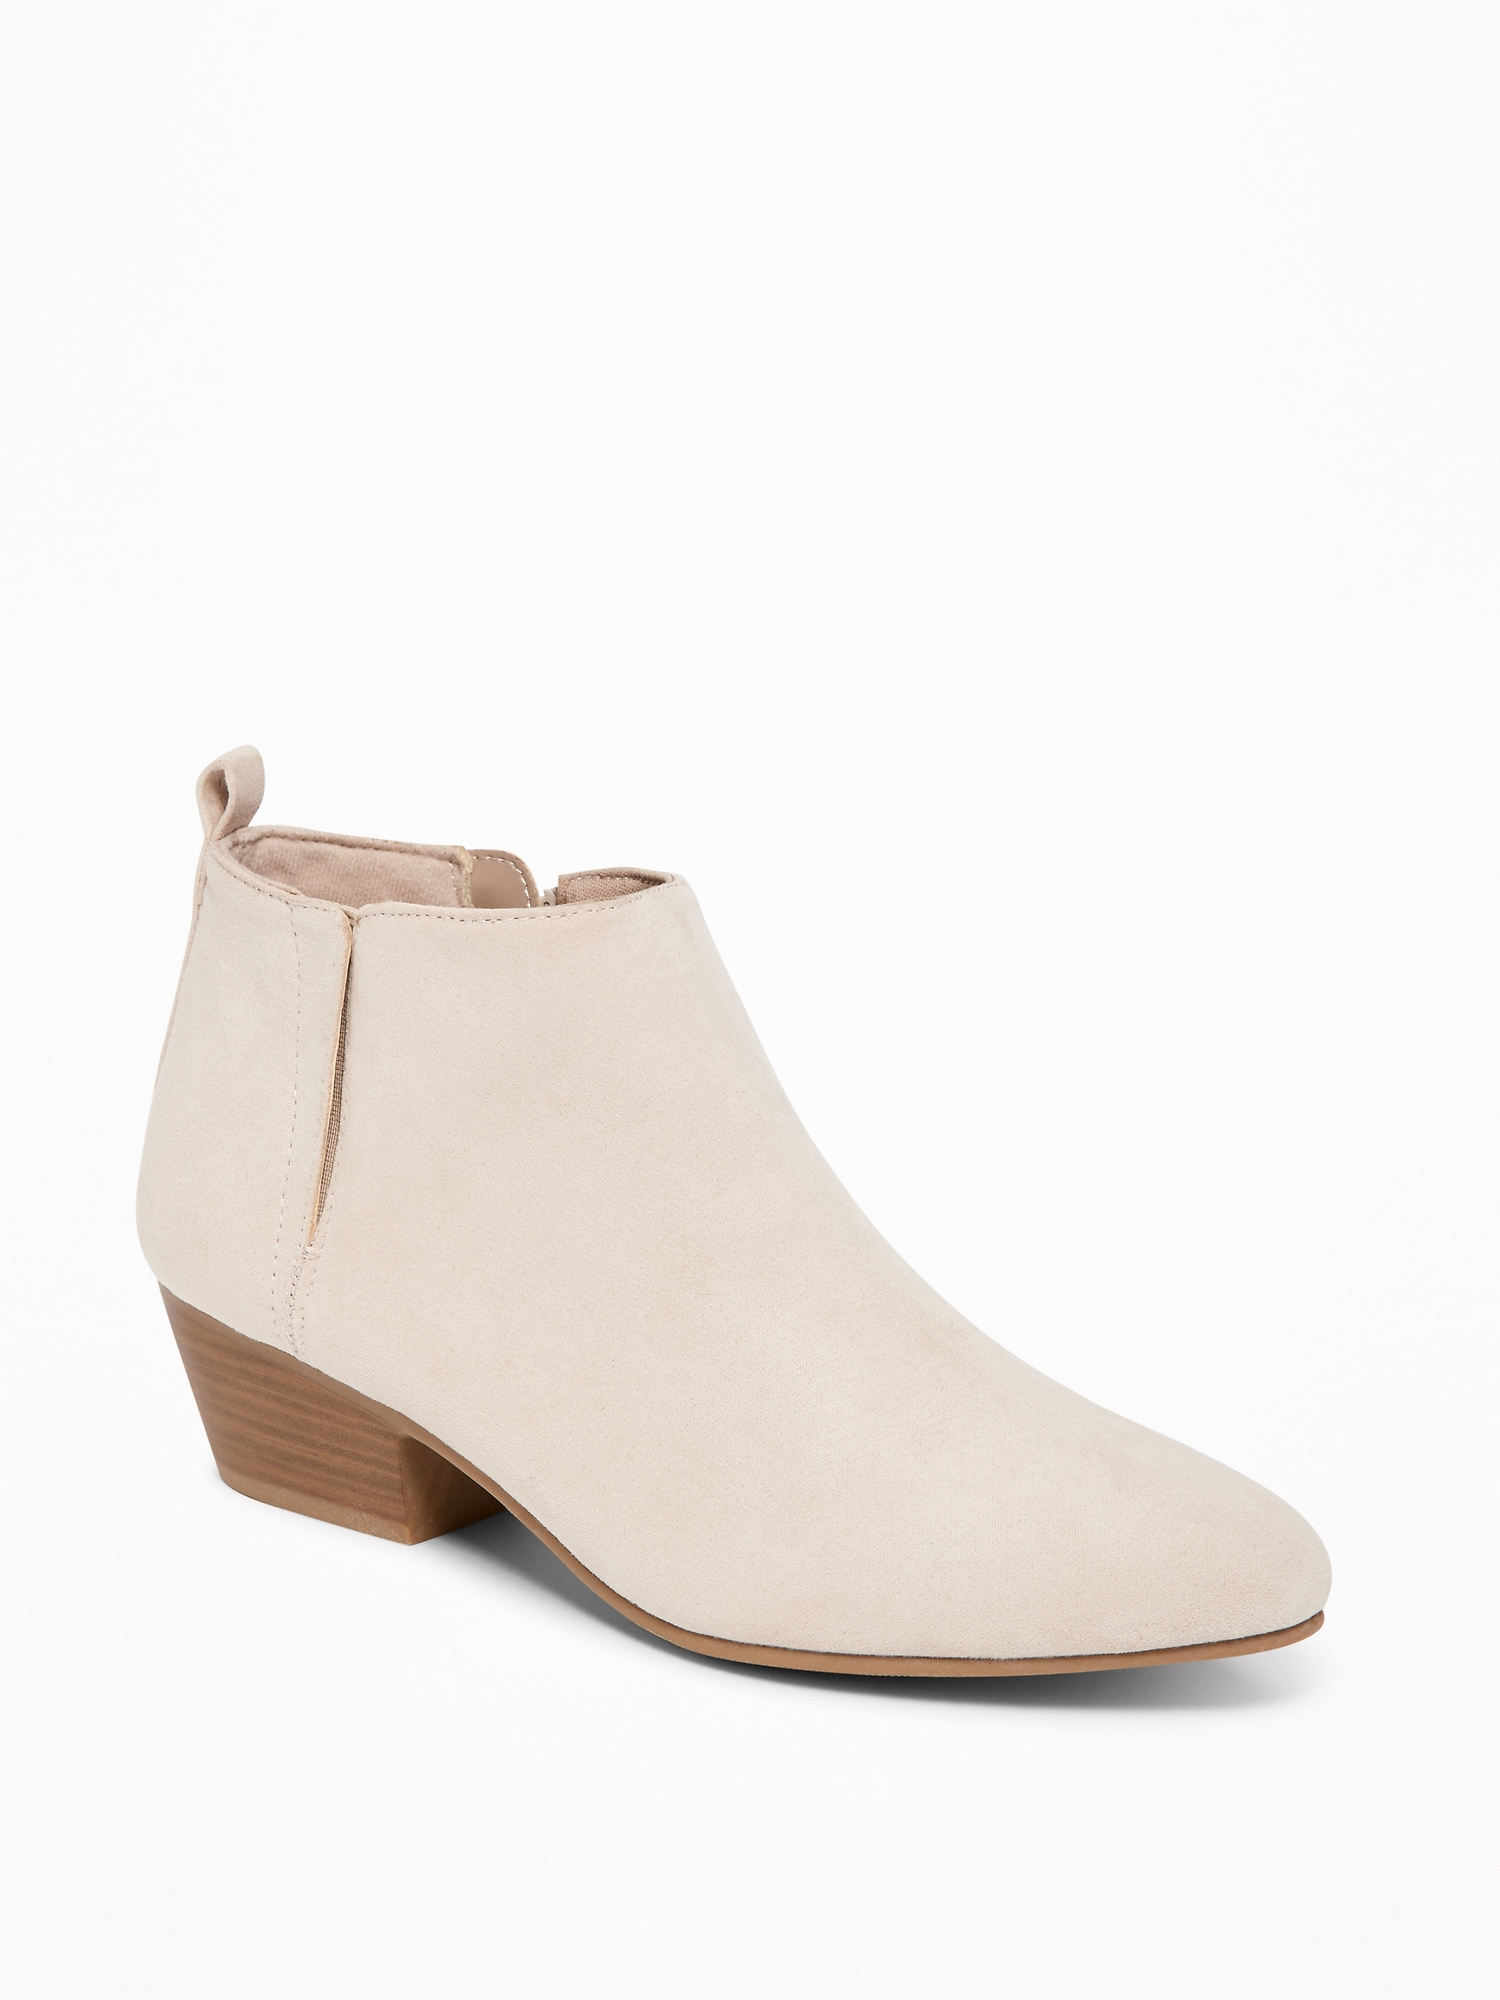 Sueded Ankle Boots for Women - Sidewalk Ends